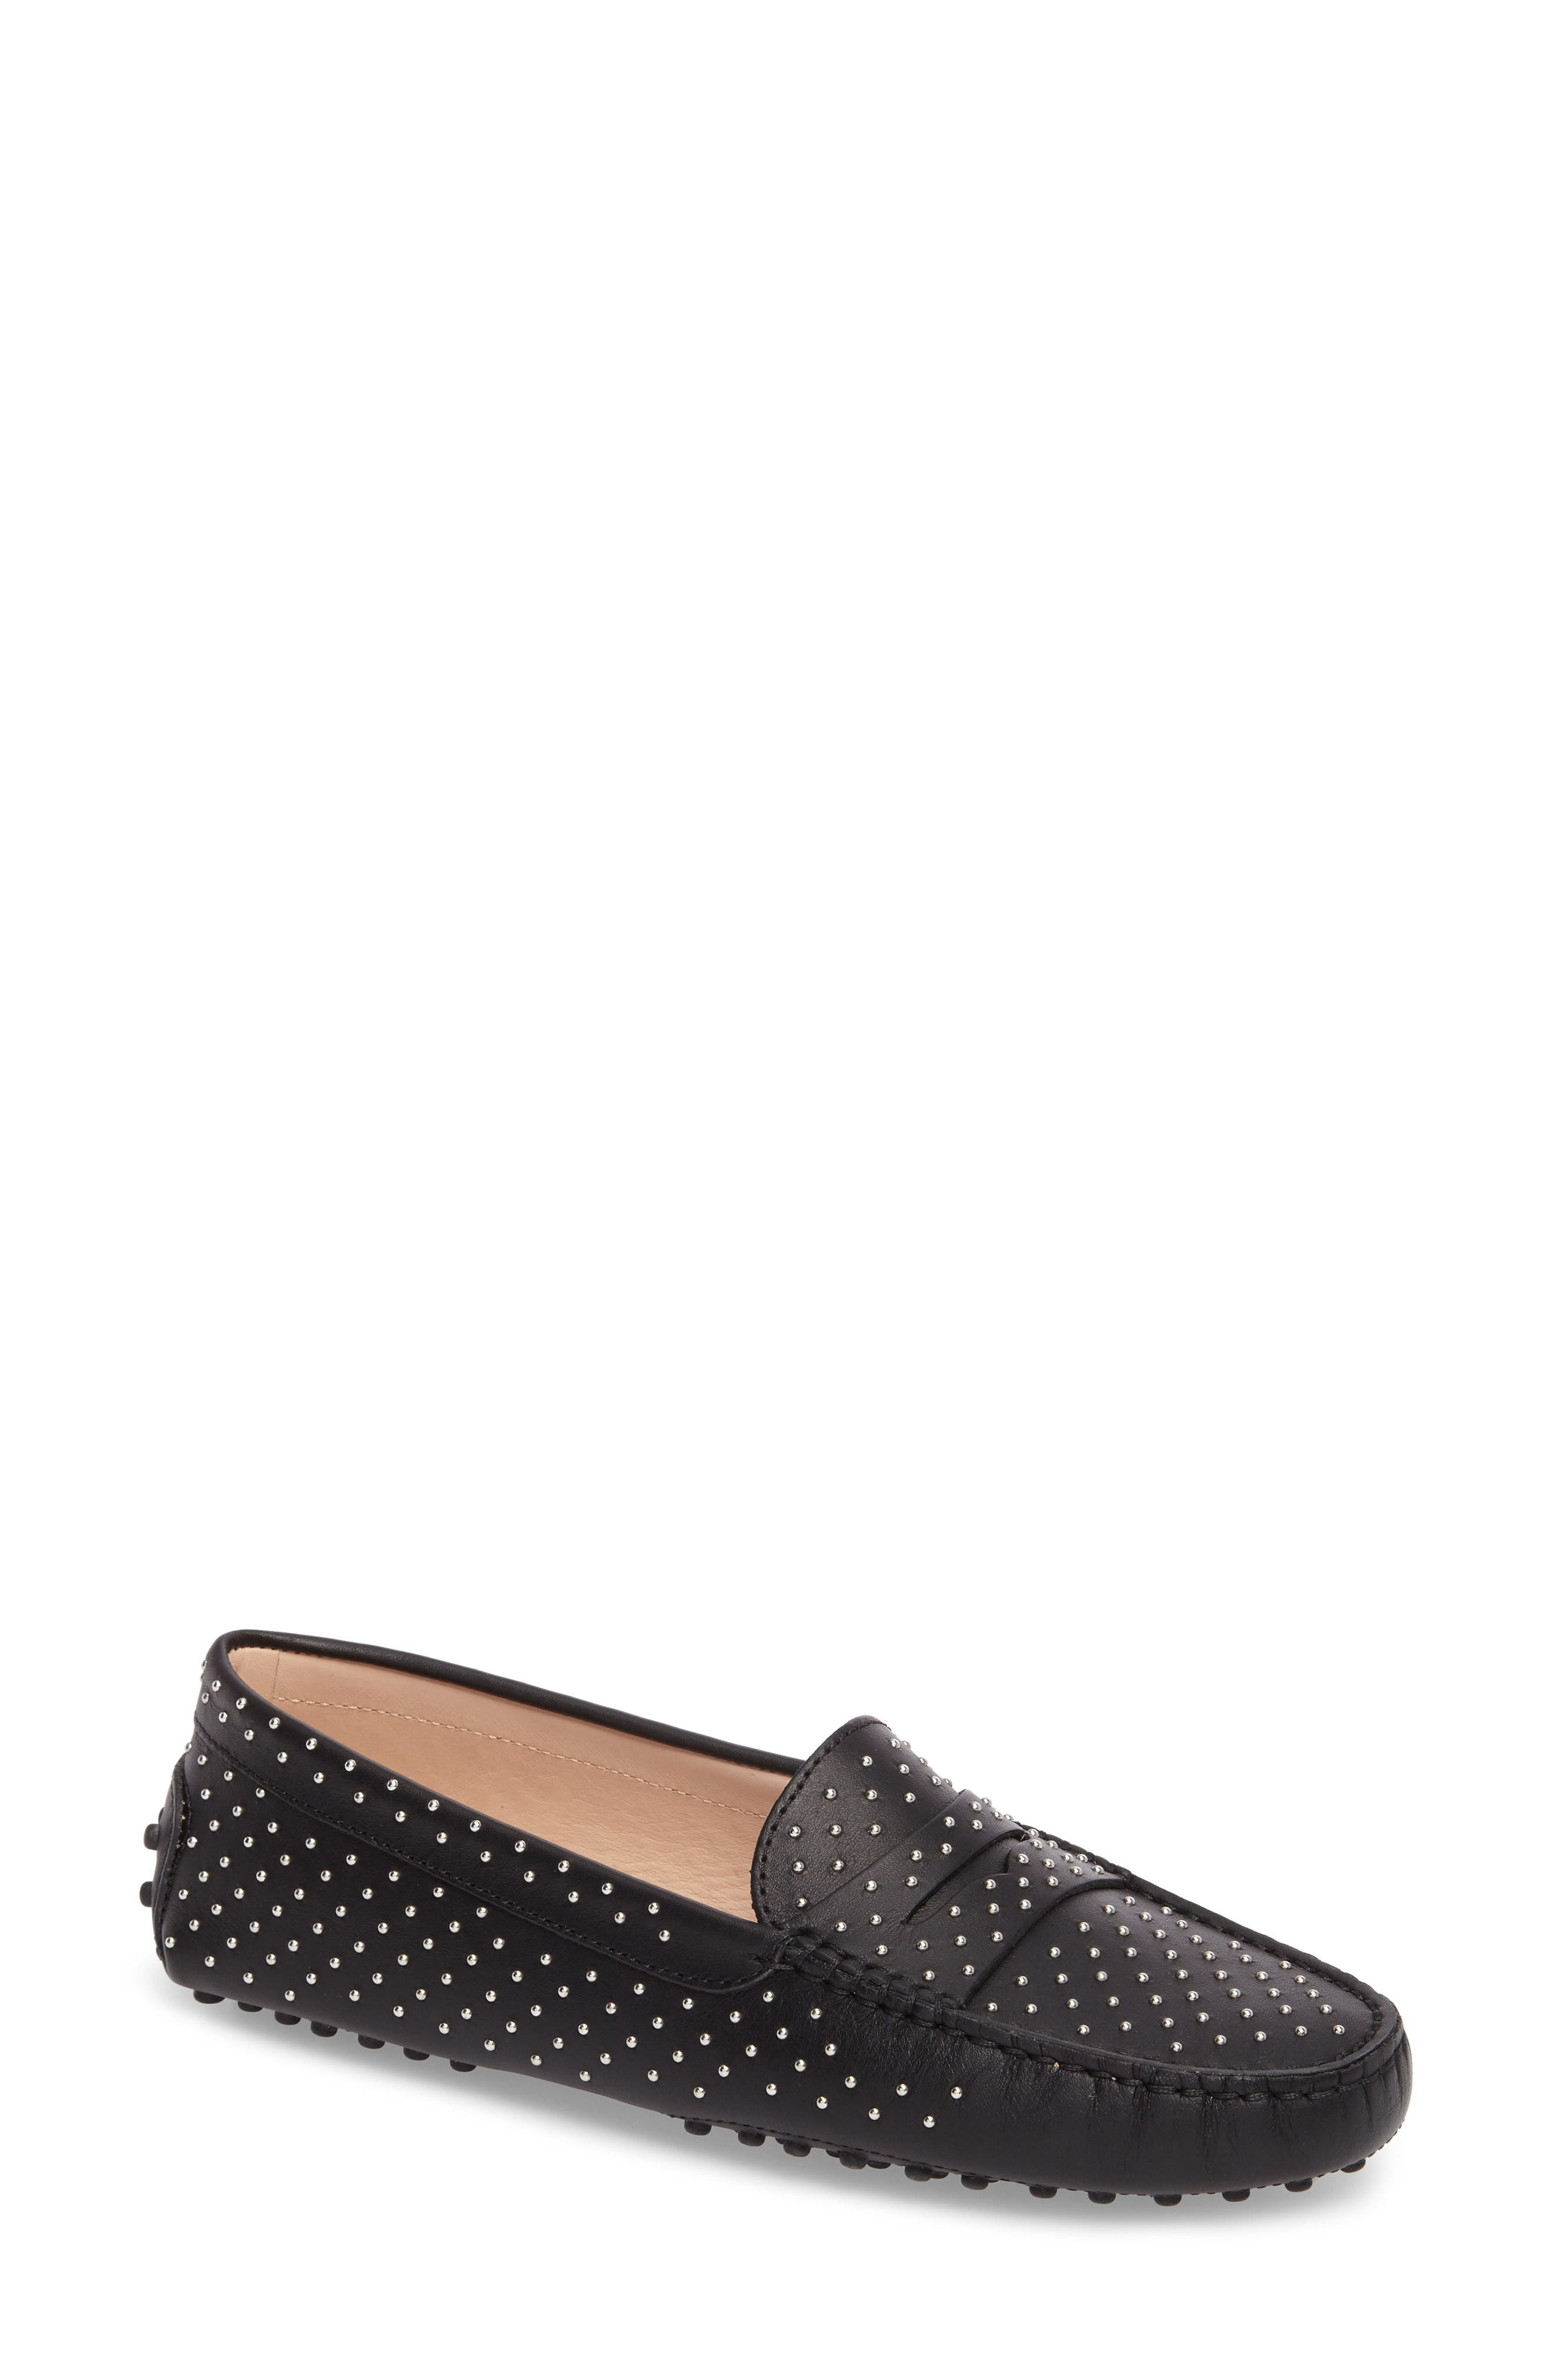 Gommini Stud Penny Loafer,                             Main thumbnail 1, color,                             001